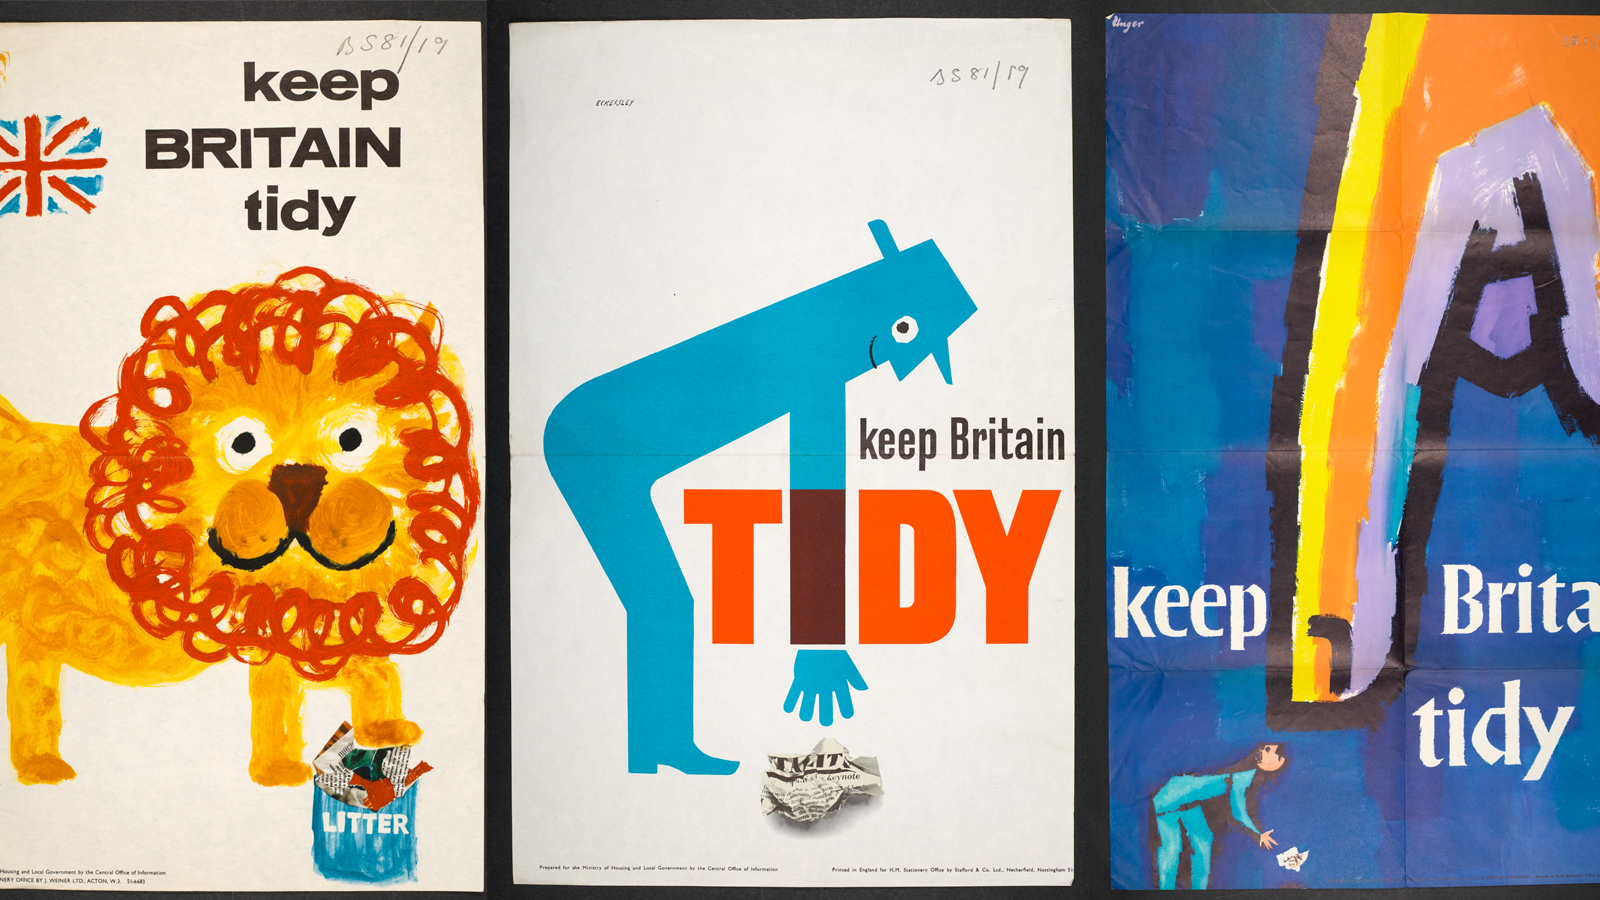 Three Keep Britain Tidy posters - one featuring a lion, one a blue silhouetted figure picking up rubbish, one a giant finger pointing down at someone littering